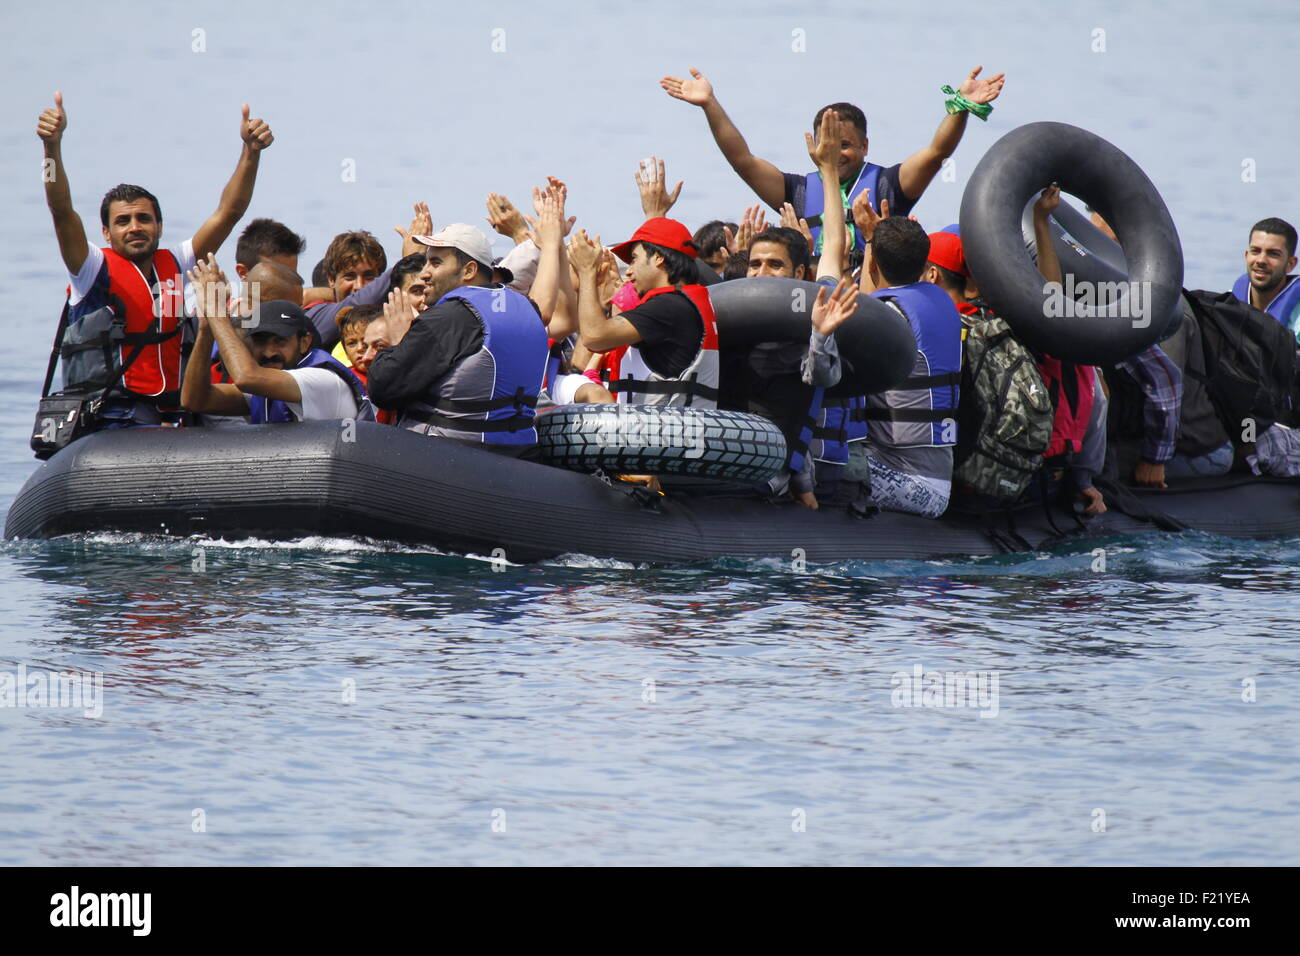 Lesbos, Greece. 9th September 2015. The refugees in an approaching small inflatable rubber dinghy cheer and wave - Stock Image